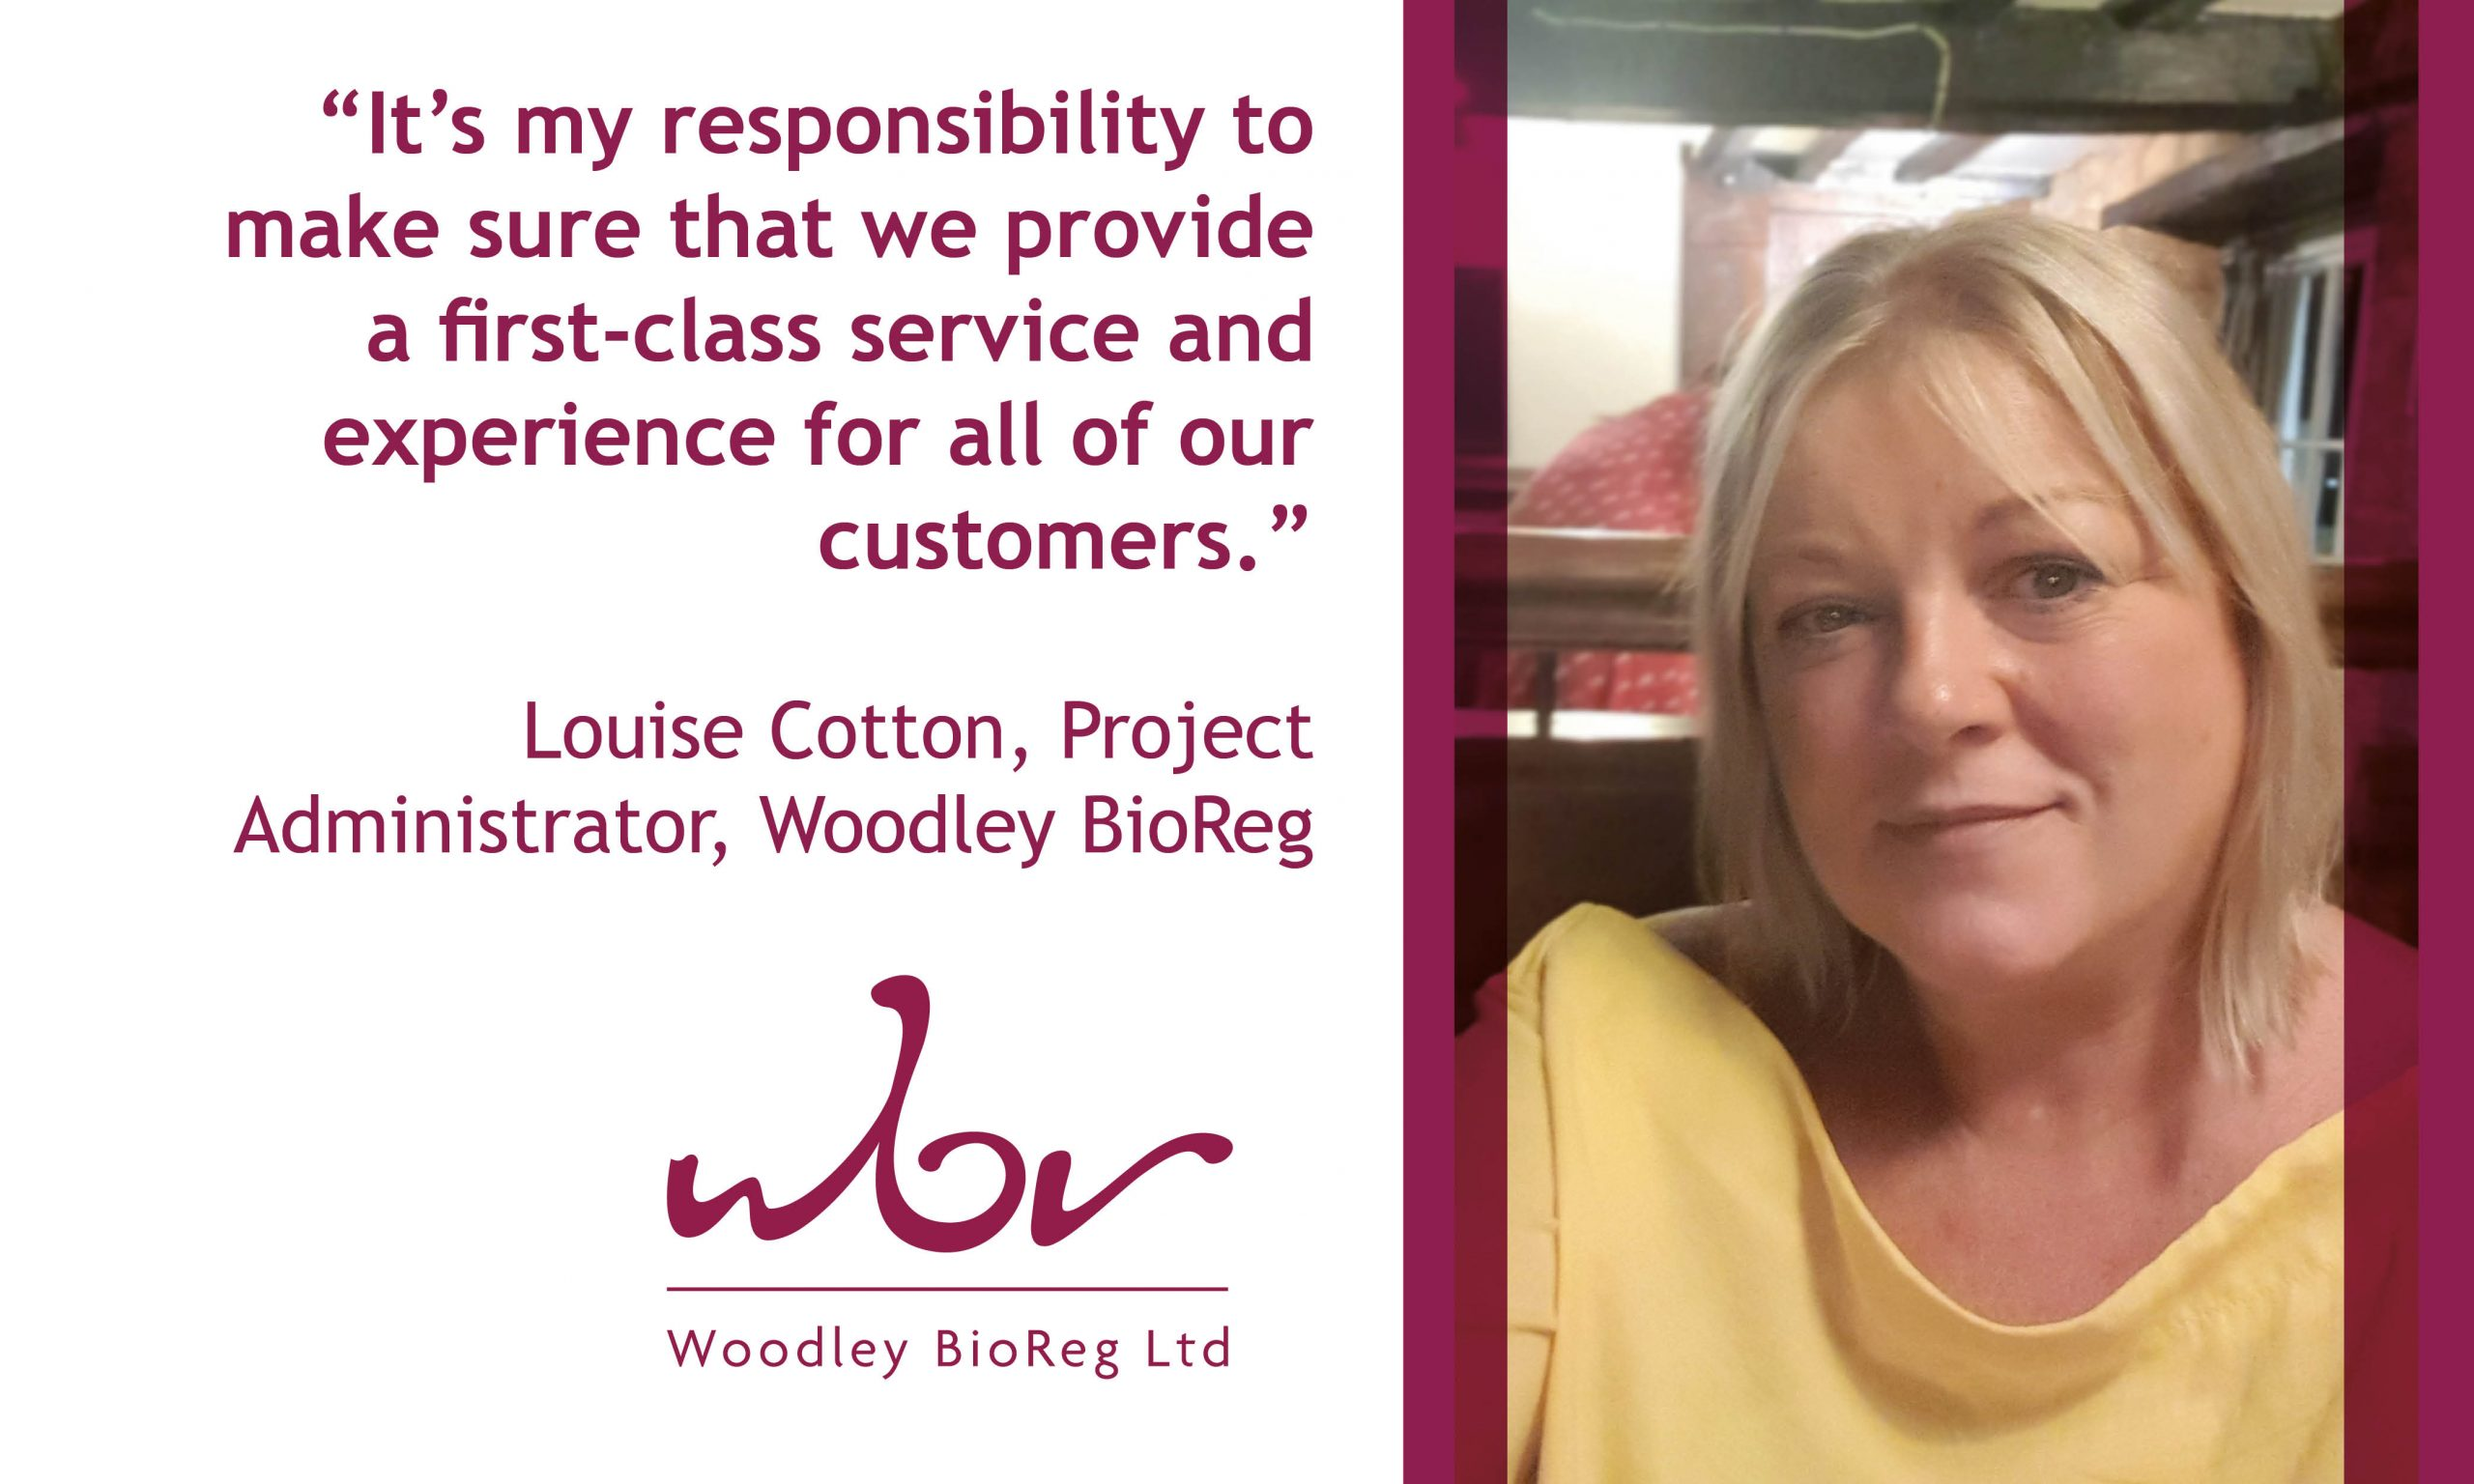 Louise Cotton tells why she likes to work at WBR